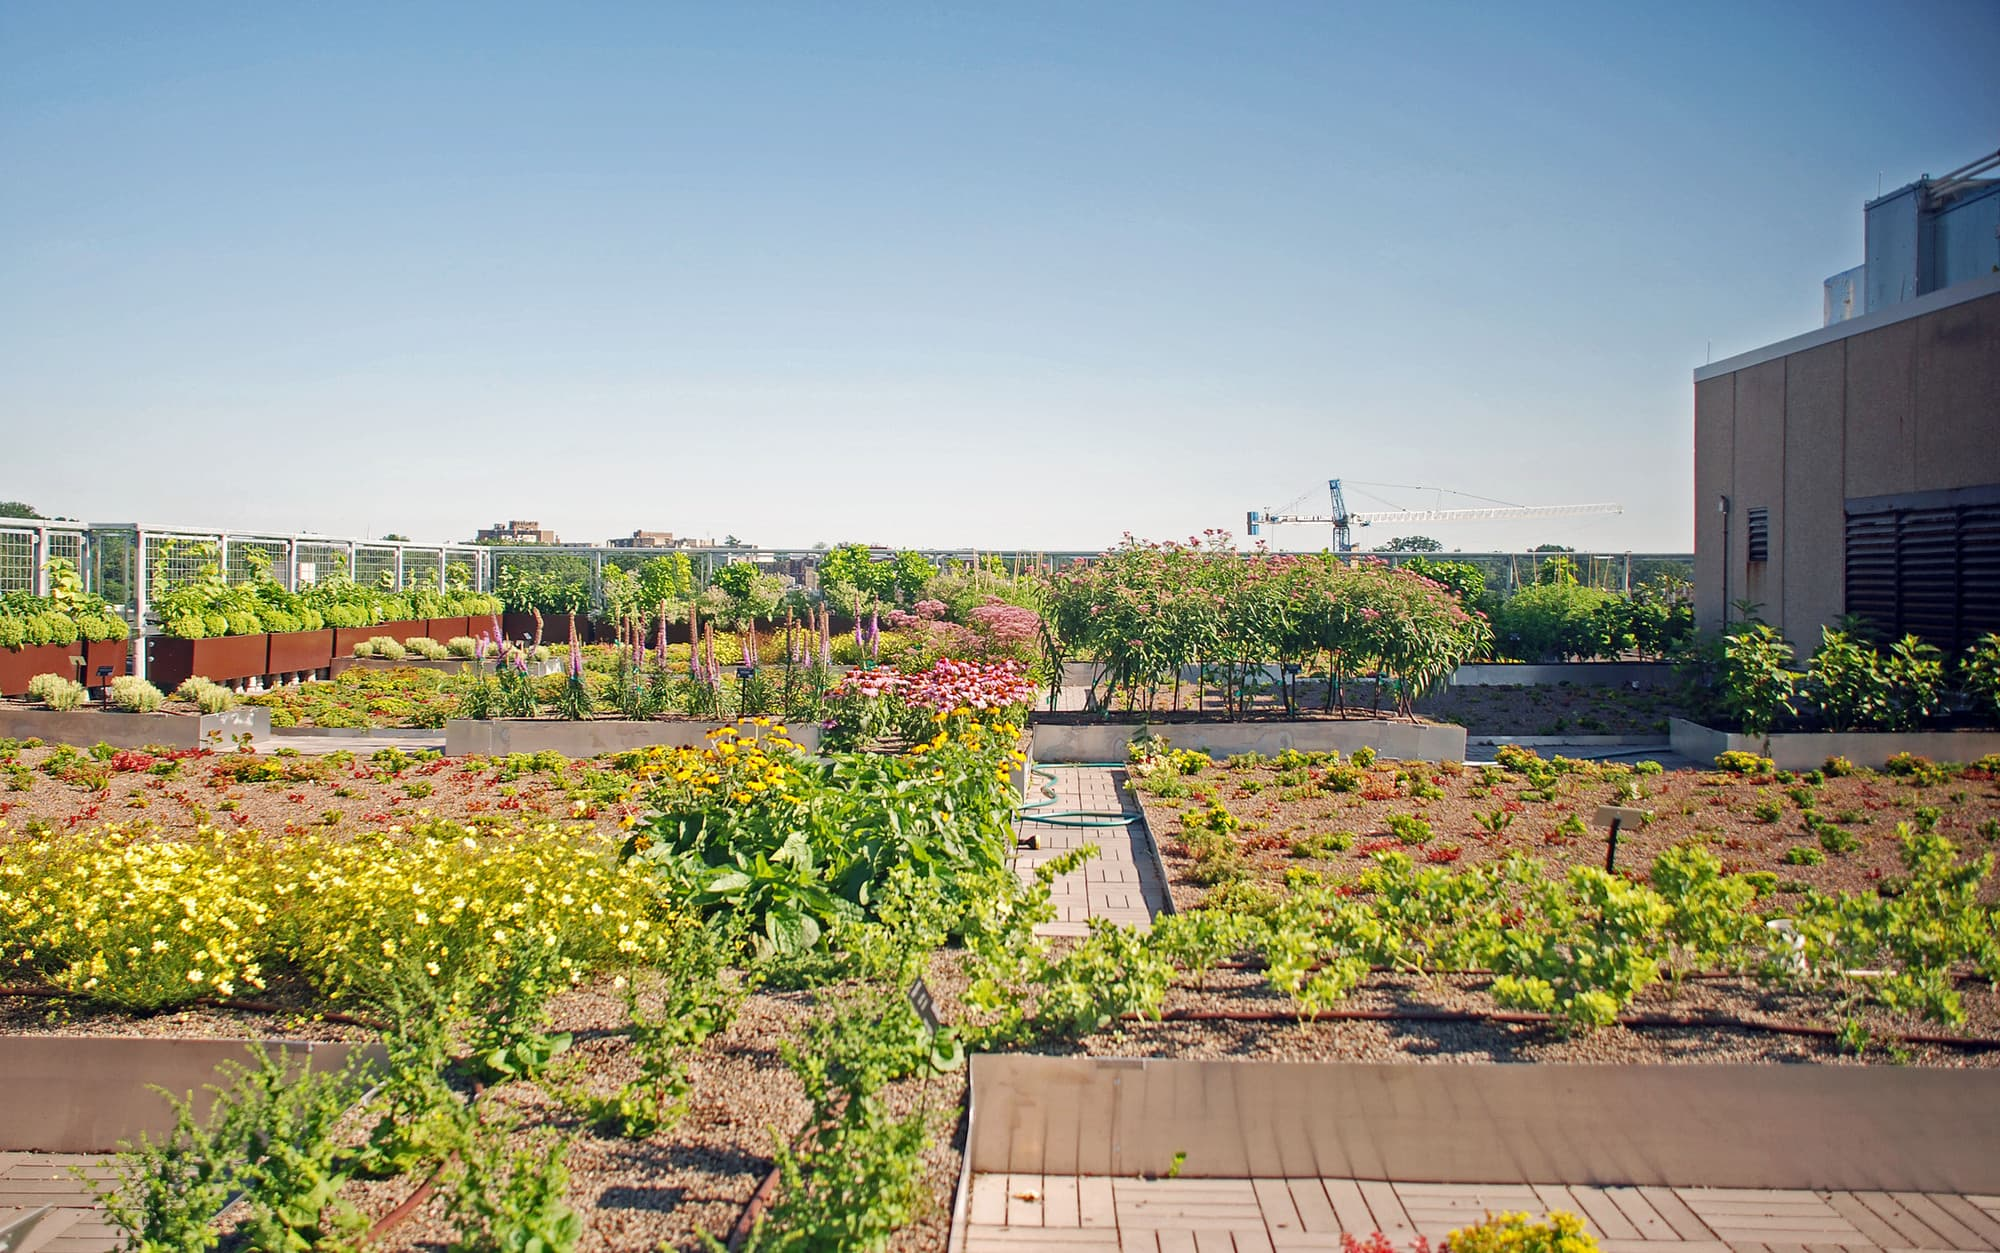 The UDC Green Roof